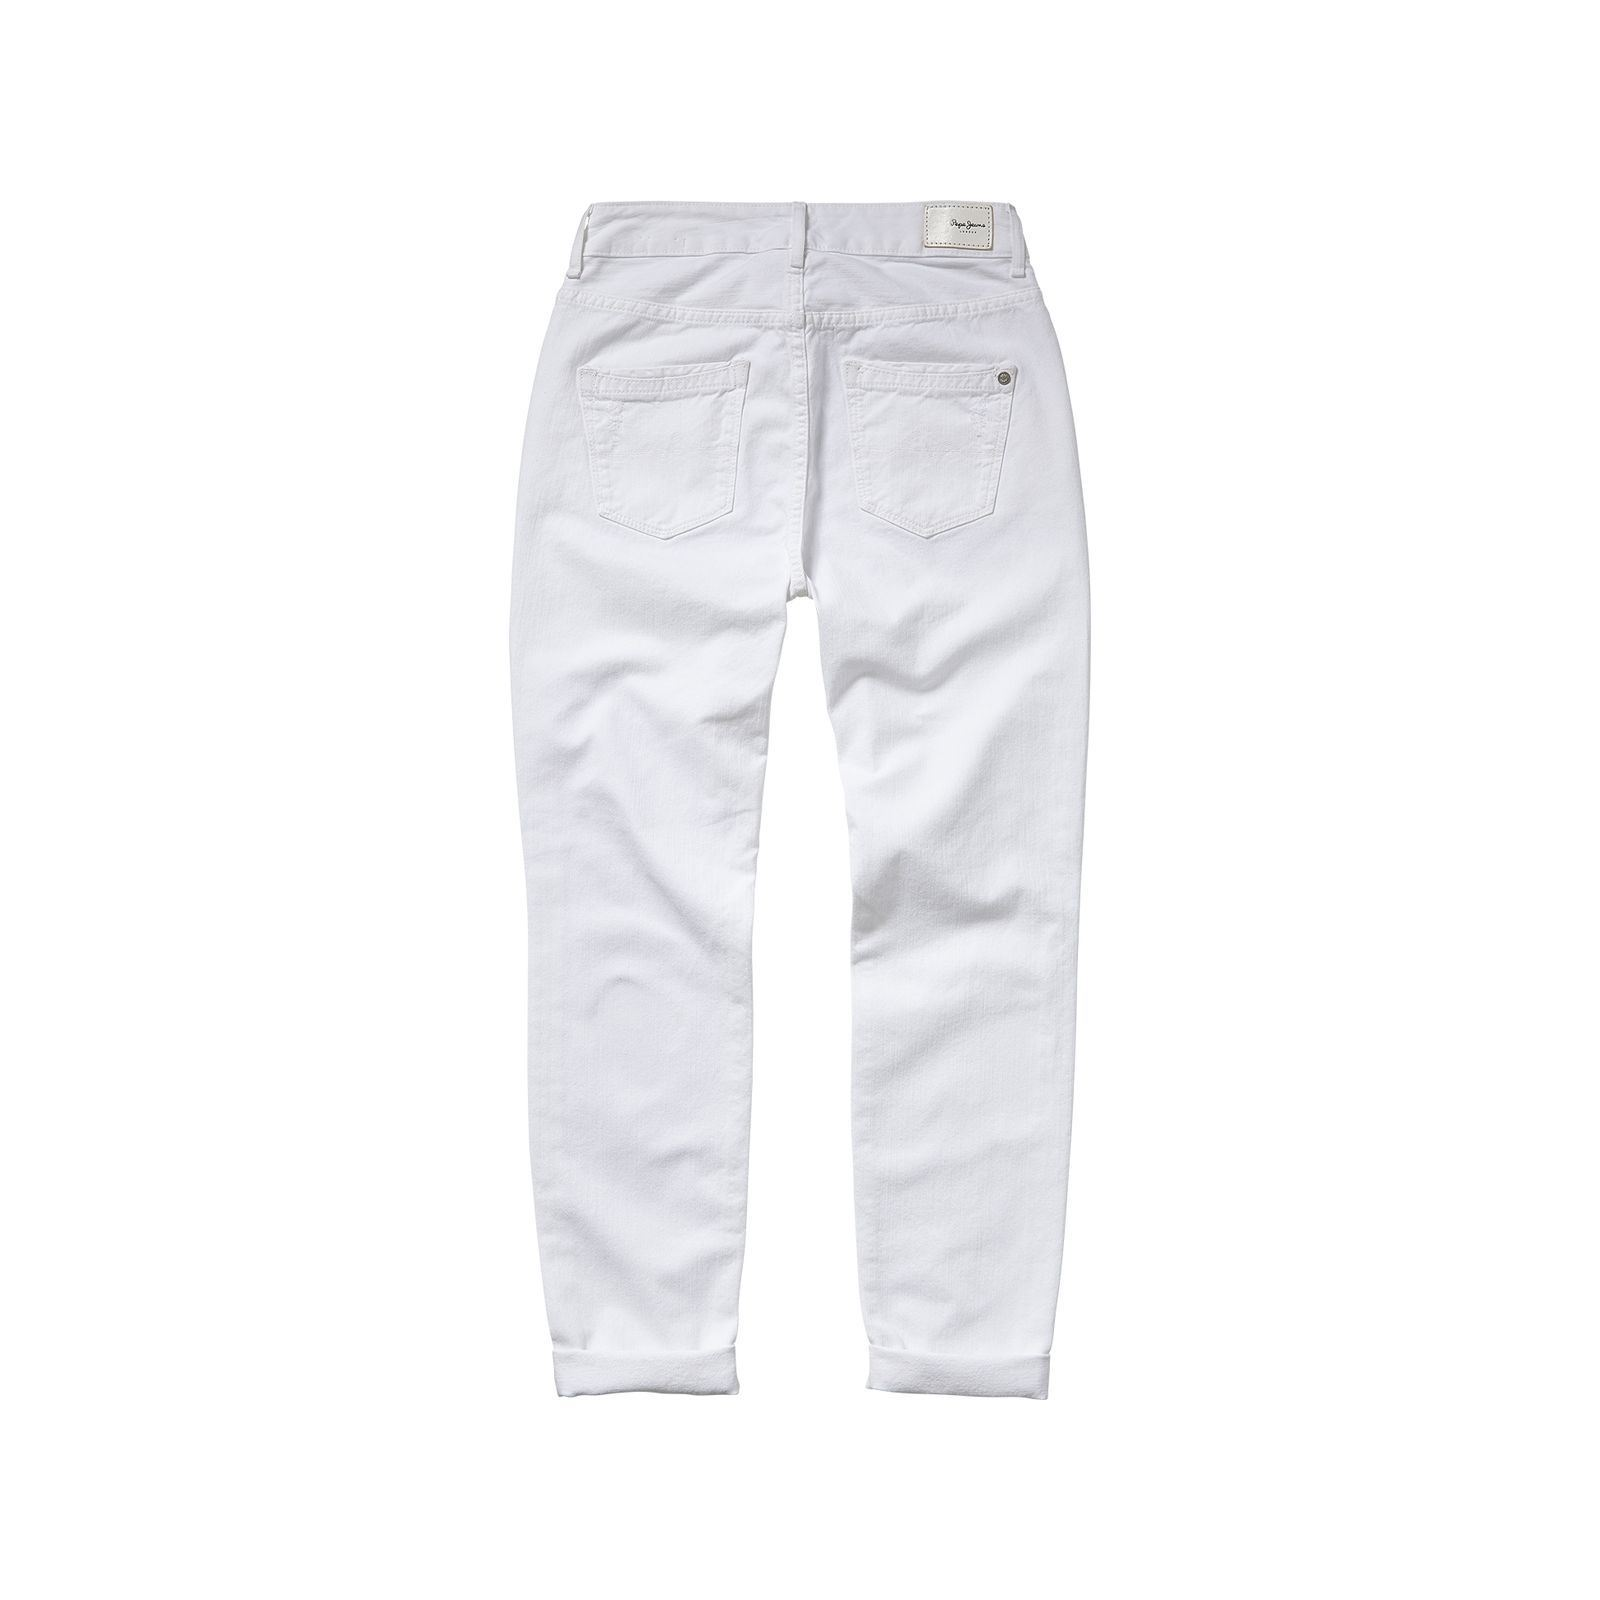 Pepe Jeans London Marge  Slim  bianco  BrandAlley